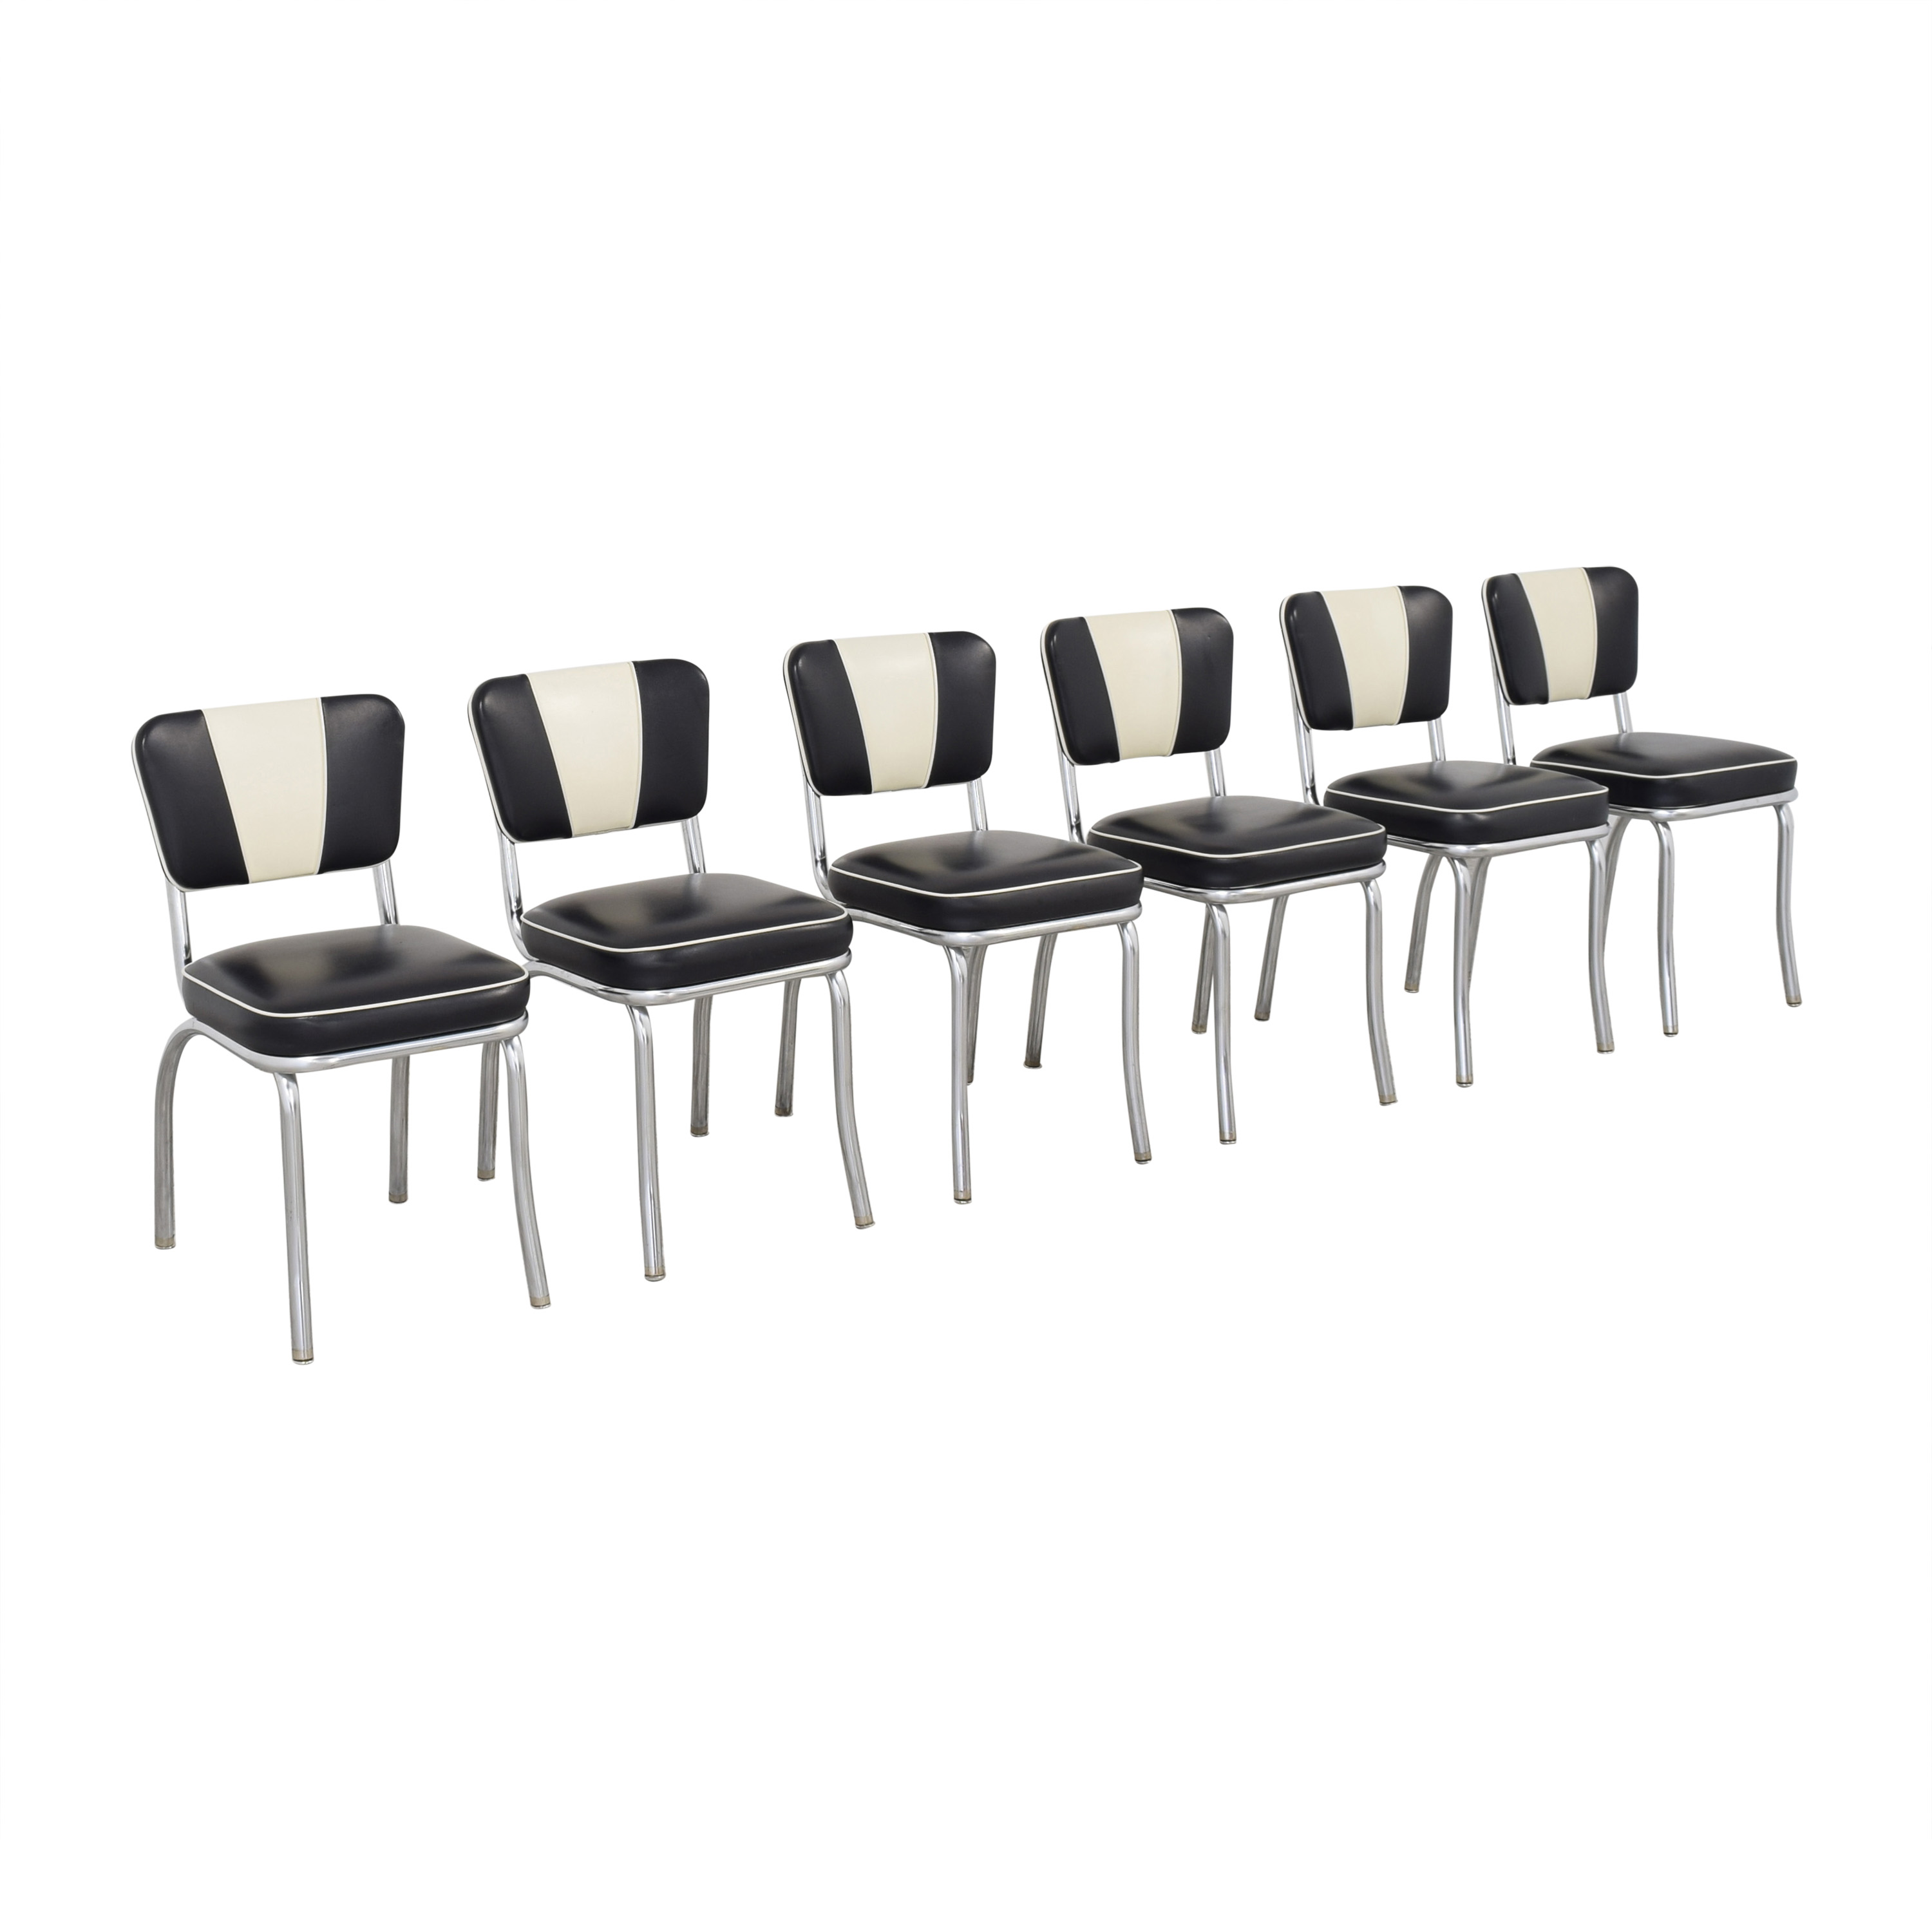 Richardson Seating Corp Richardson Seating Classic Diner Chair second hand